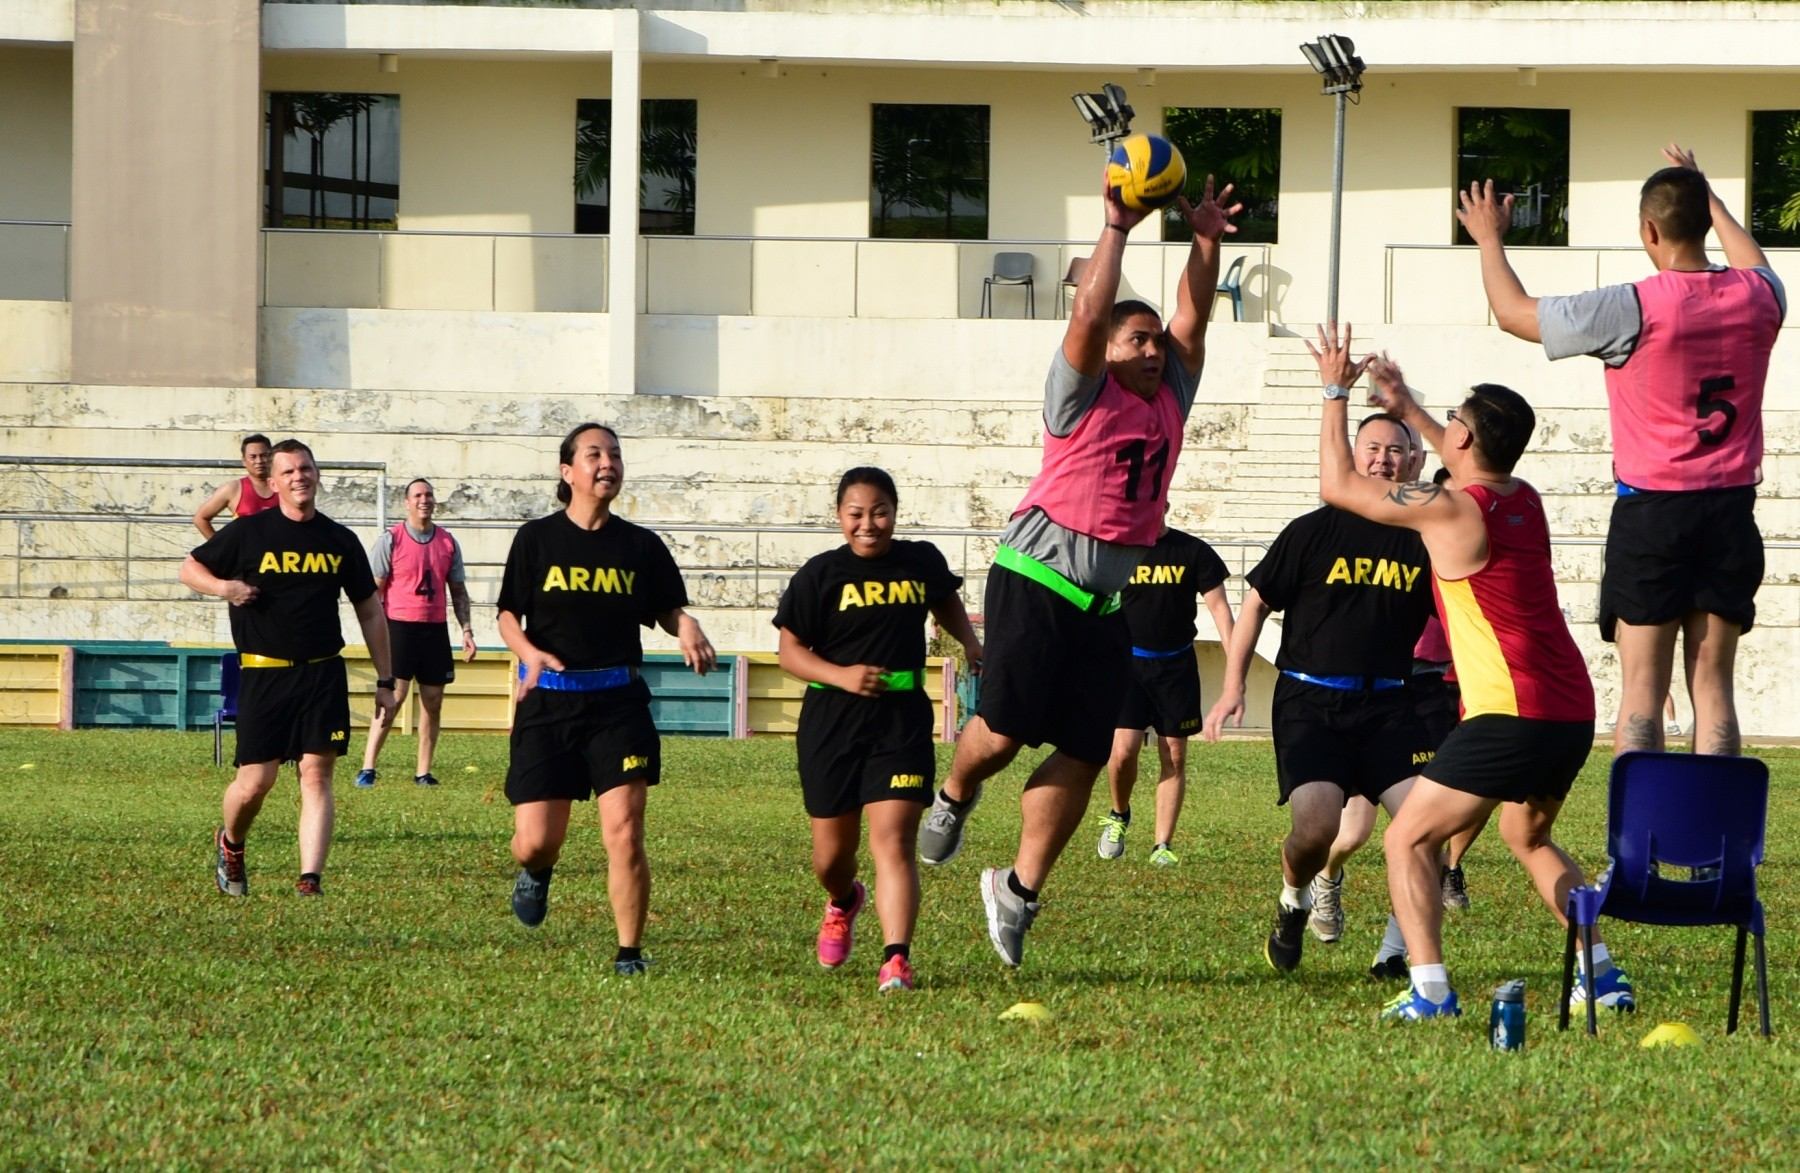 Strengthening U S And Singapore Partnership During Tiger Balm 2017 Article The United States Army